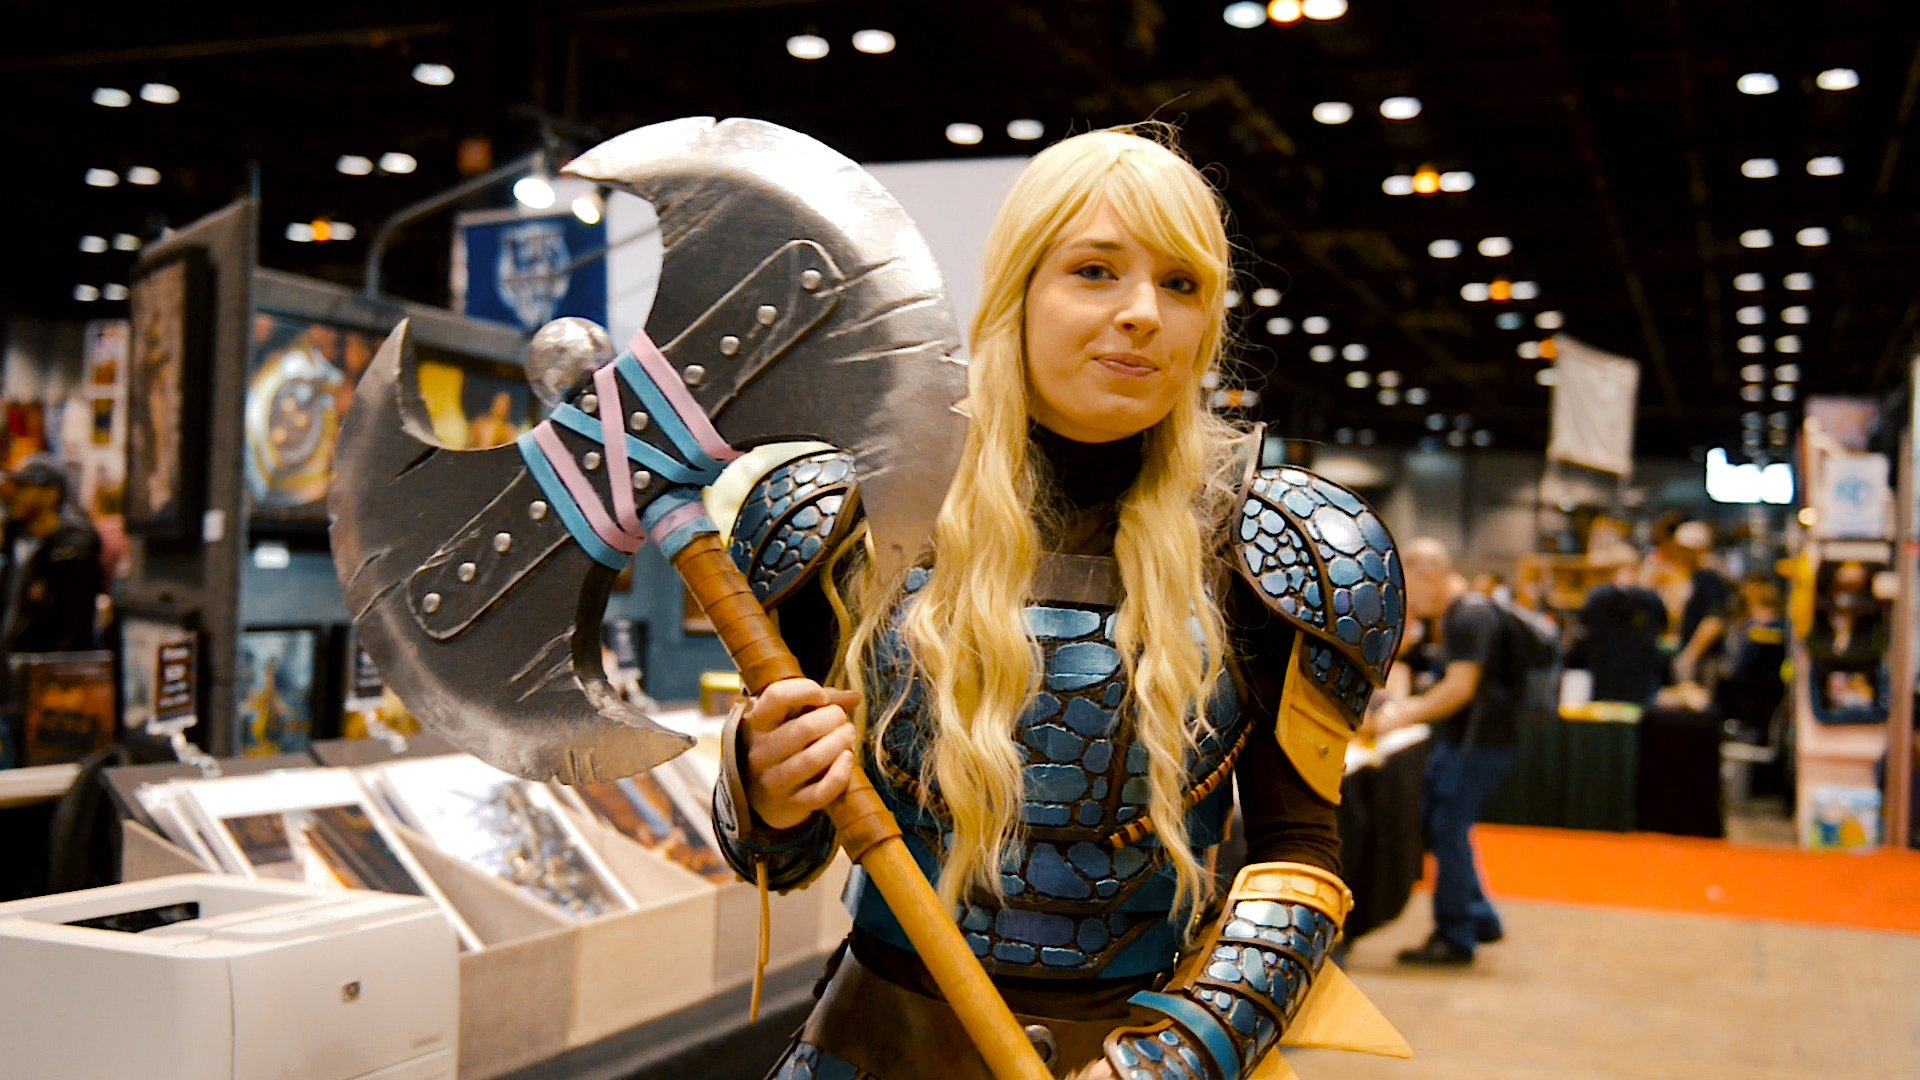 Astrid cosplay and axe made using hot glue